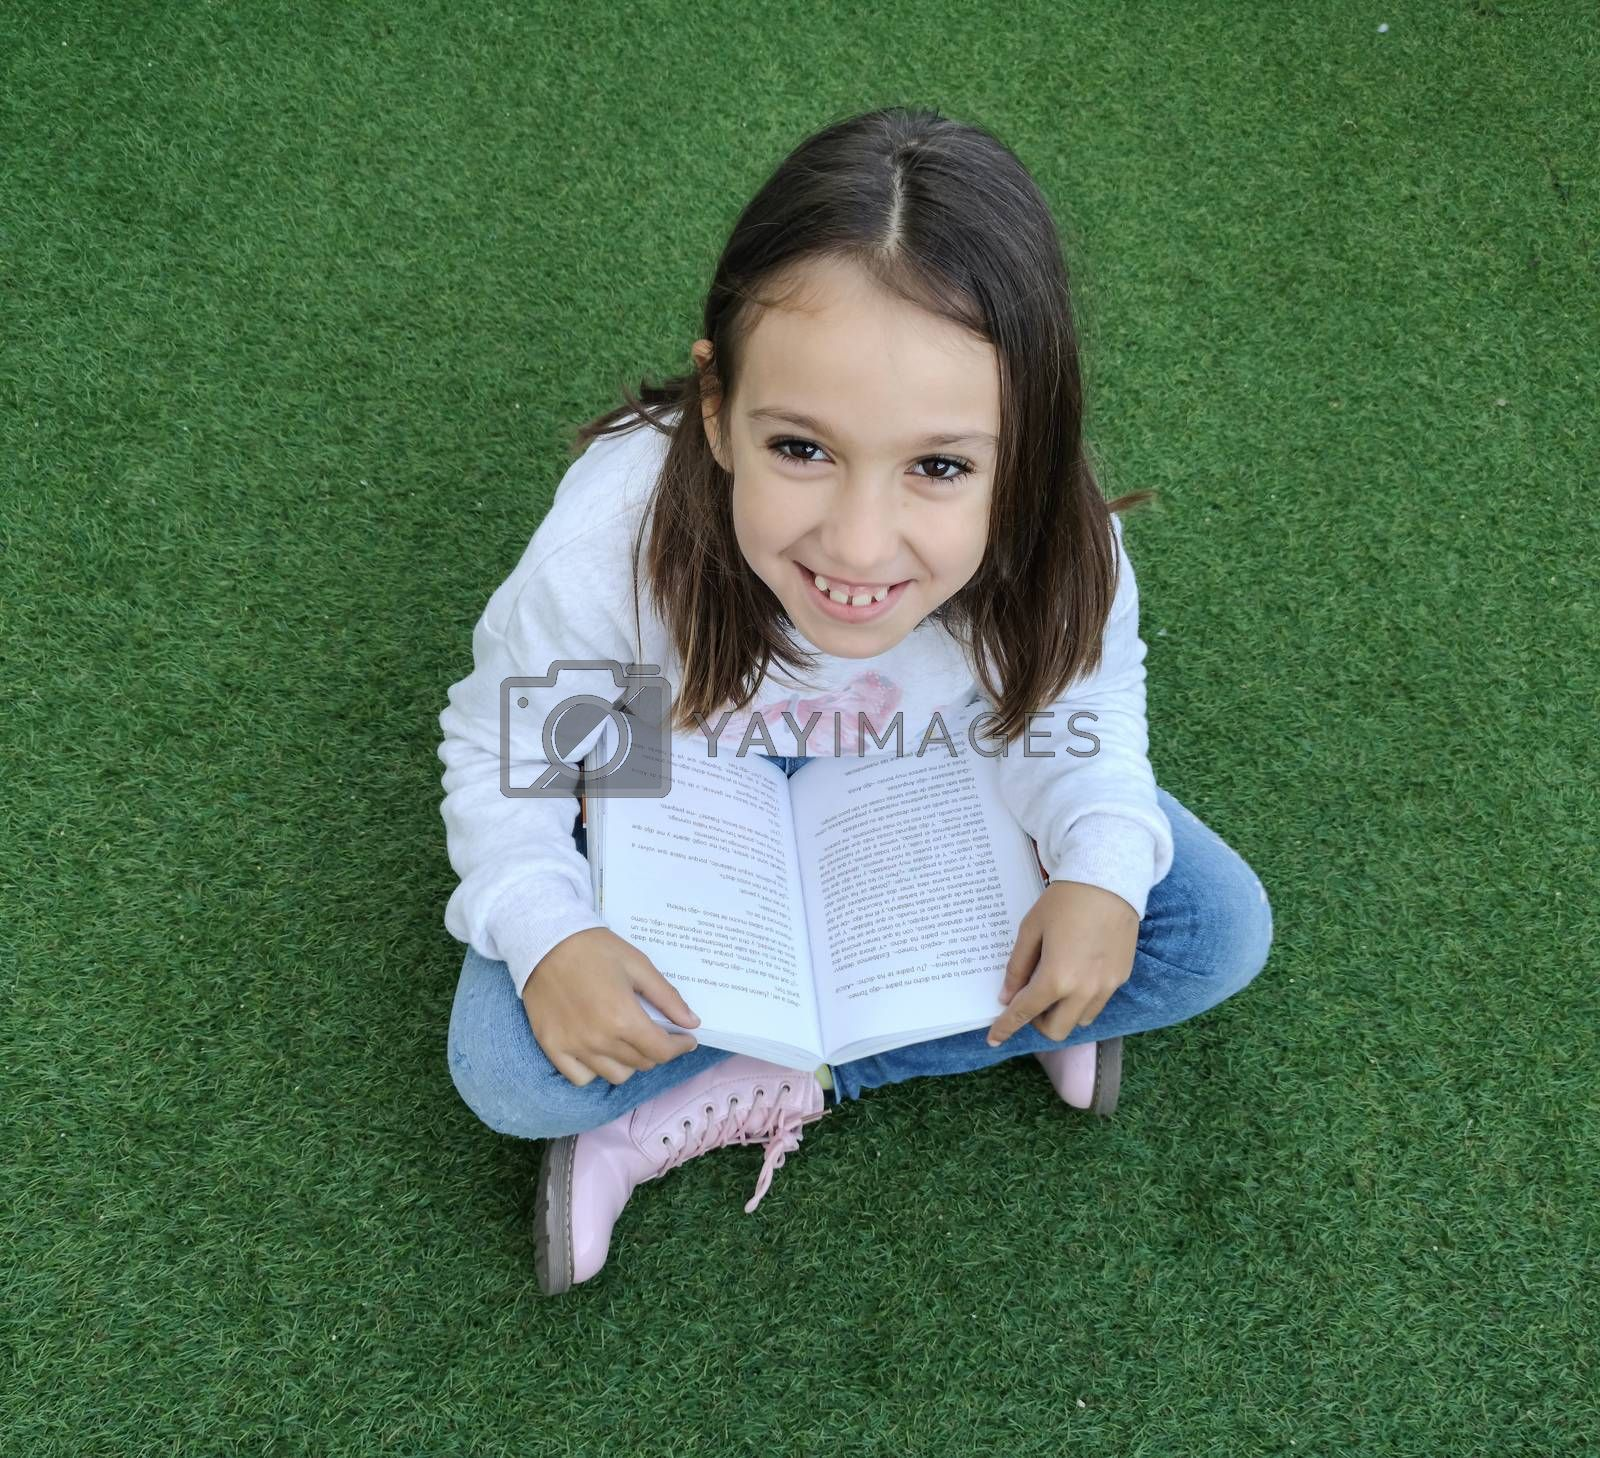 Smiling girl reading by Barriolo82